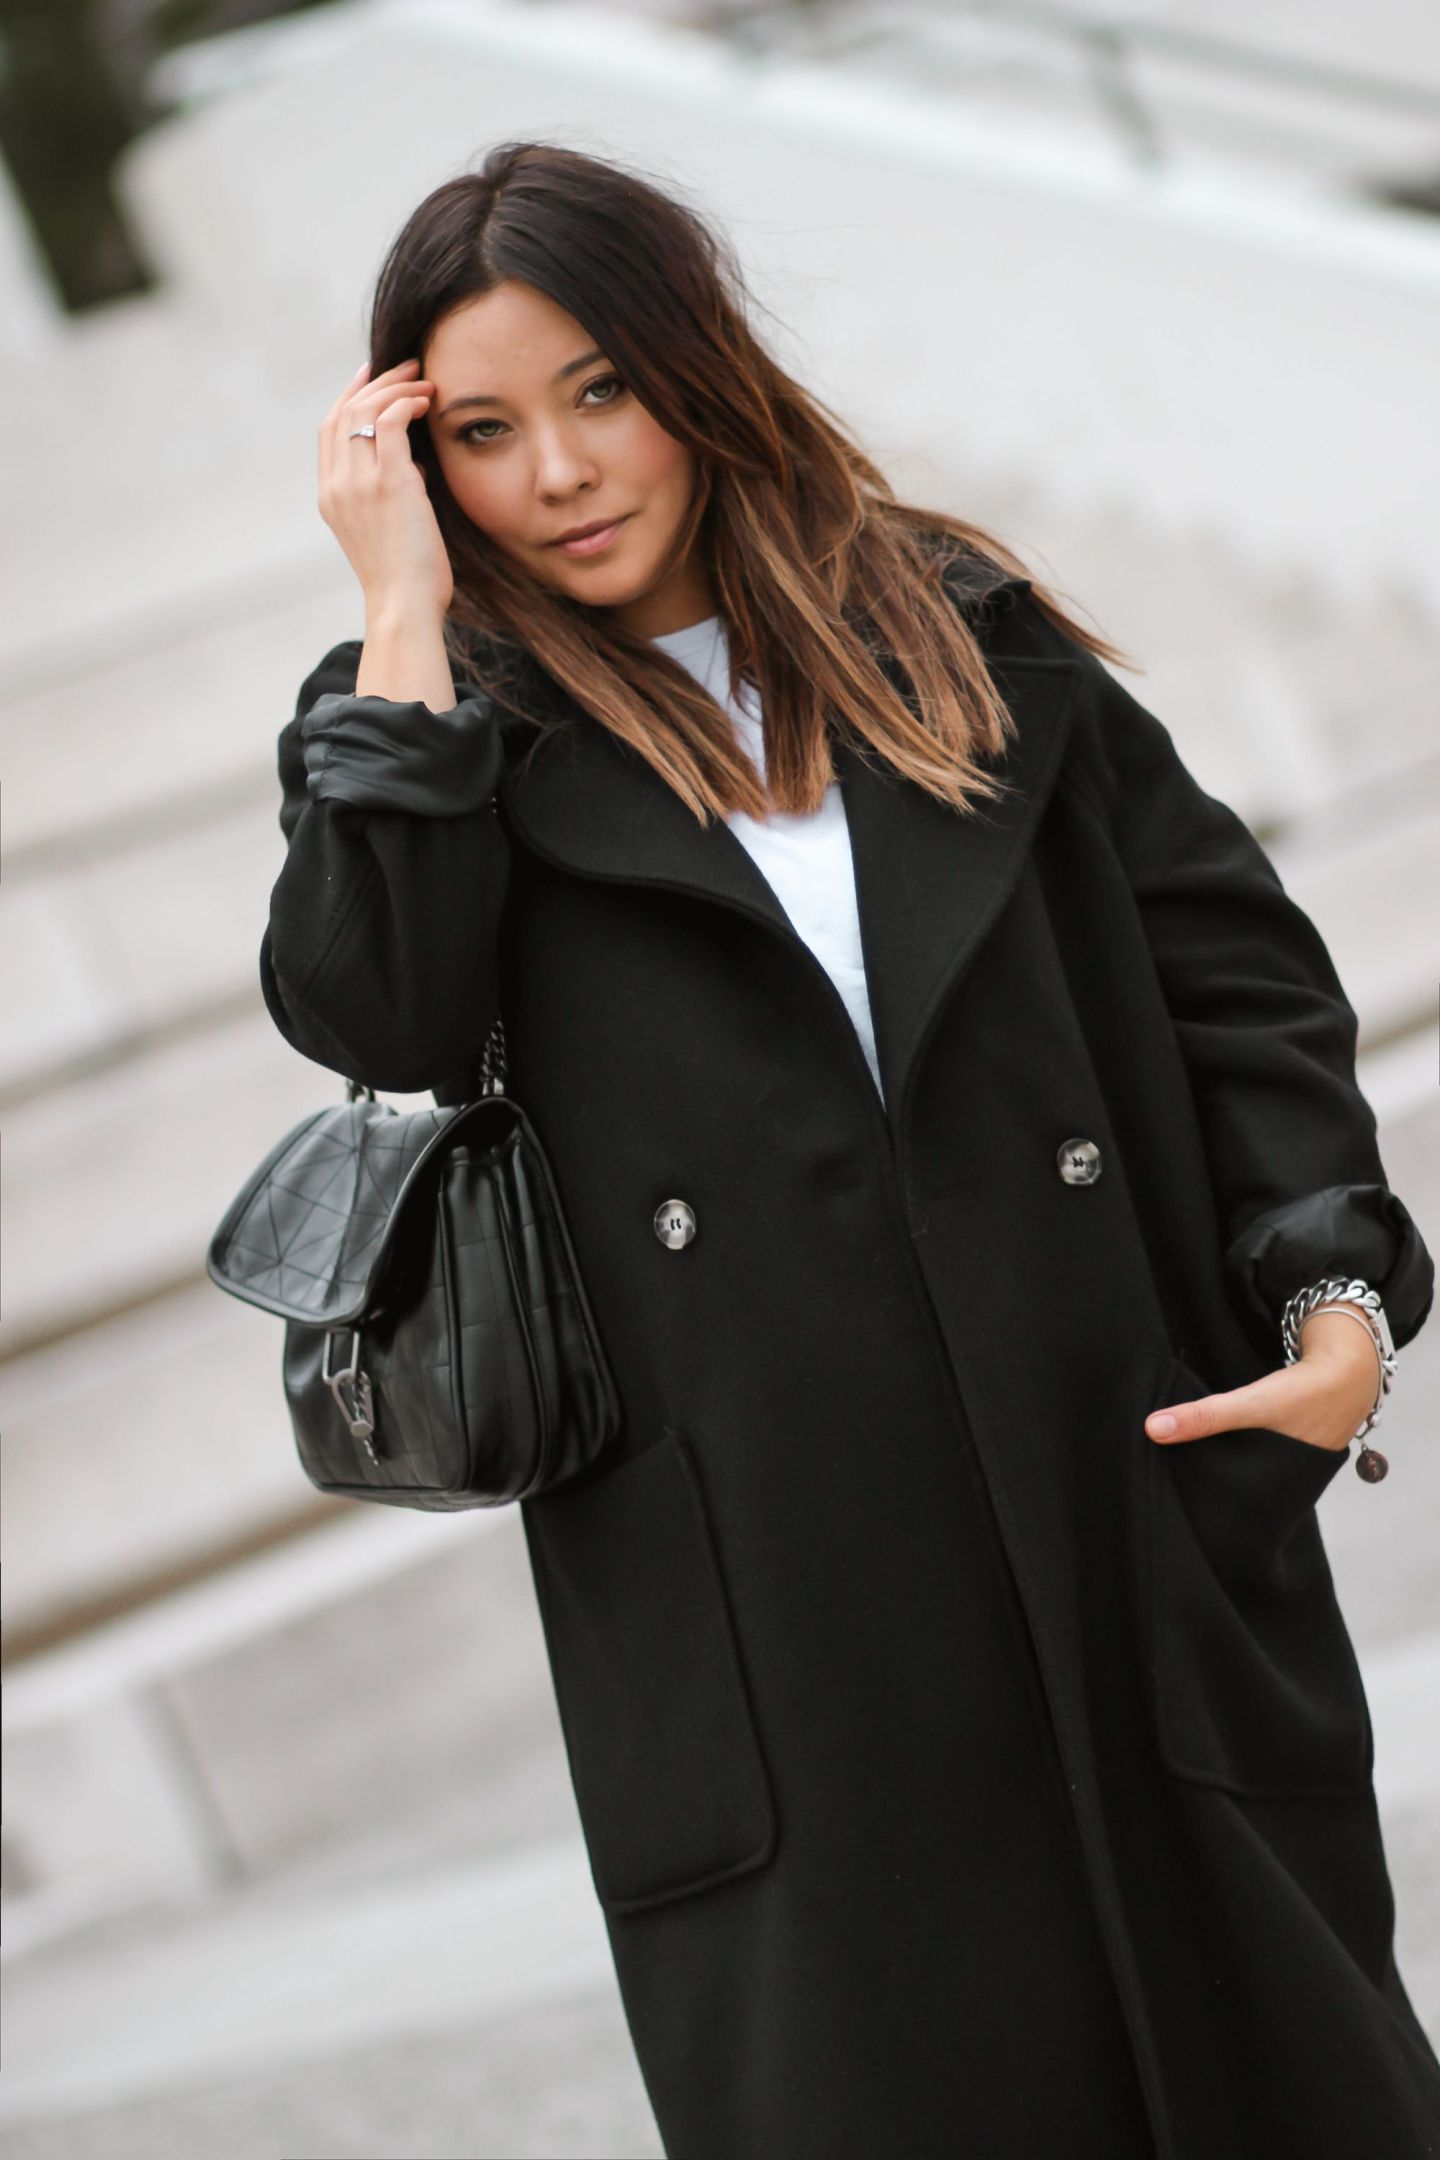 blogueuse mode, manteau noir hm, sac inspi ysl, sac zara, baggy zara, boots inspi isabel marant, bottines hm, bottines western femme, and other stories, bershka, MANTEAU NOIR LOOSE + BAGGY +BOTTINES H&M INSPI #ISABELMARANT